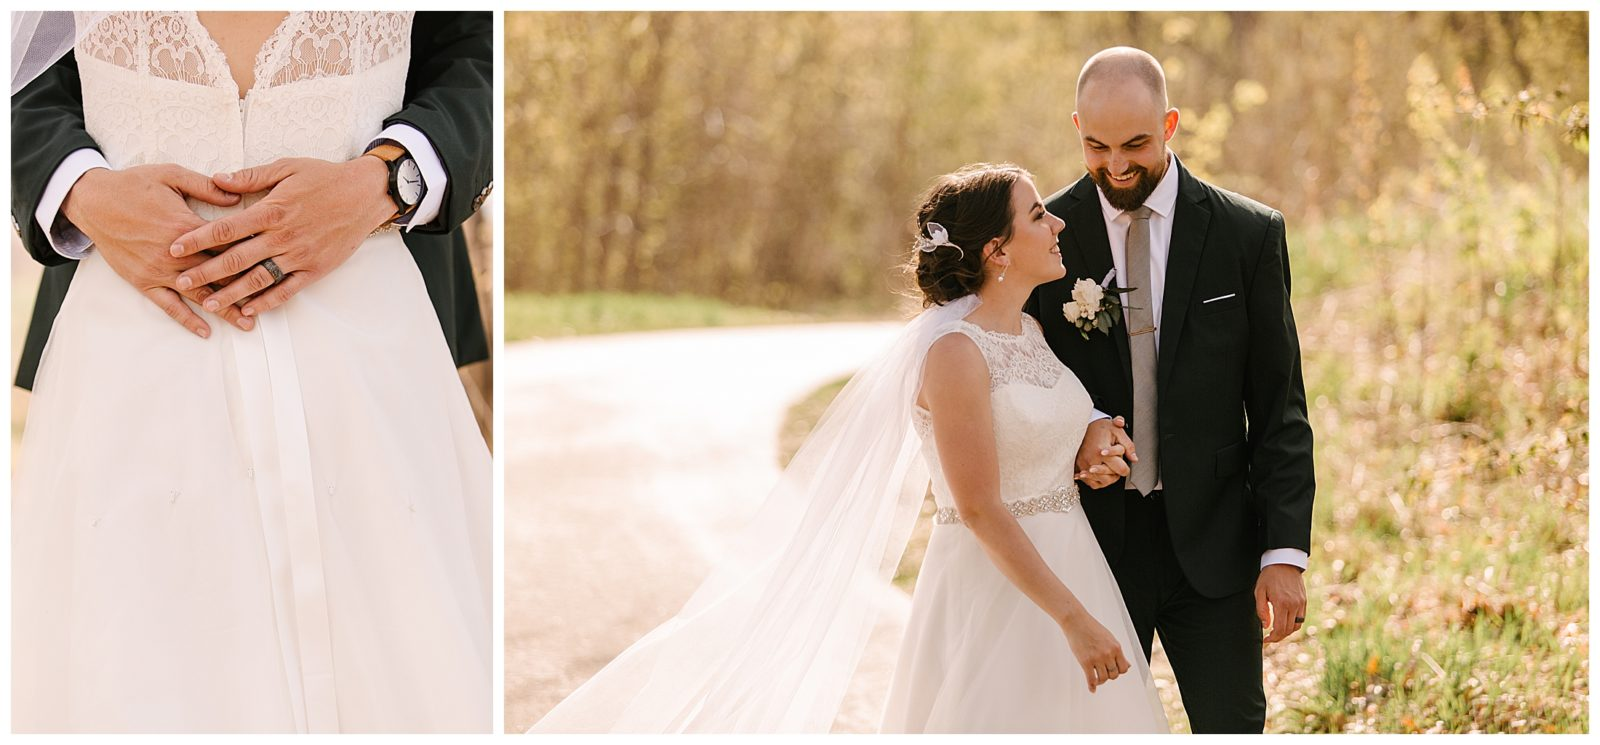 Silverwood Park wedding | May 4th wedding | Tigerlily Photography | Sixpence Events and Planning day of coordinating | bride and groom on the trail | groom with shaved head and beard